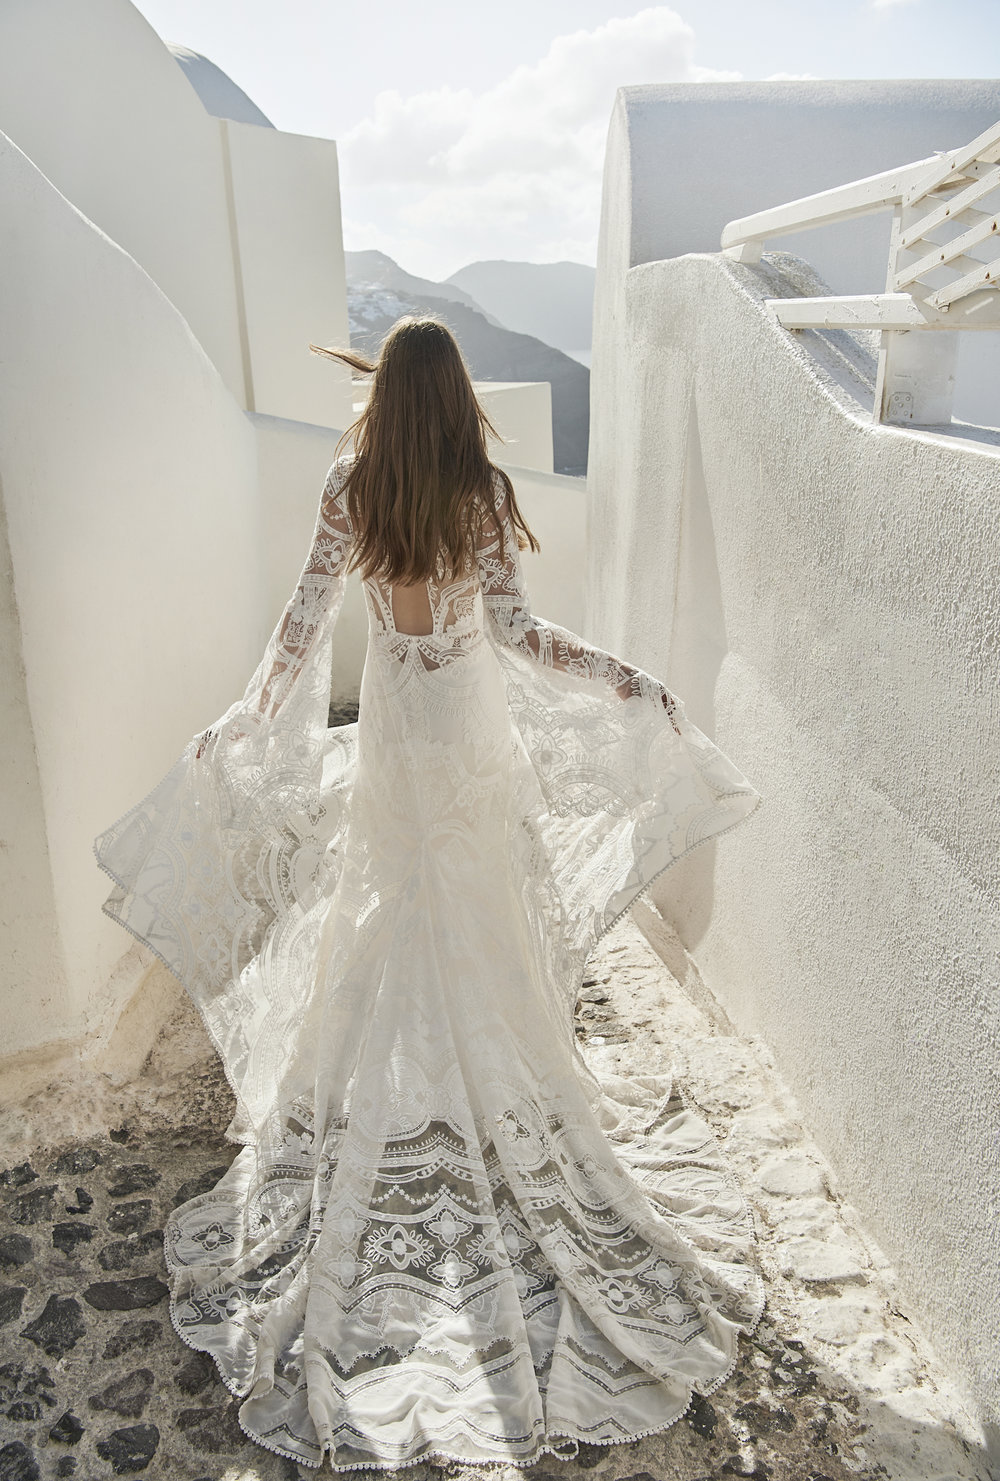 rue-de-seine-seattle-wedding-dress.jpg